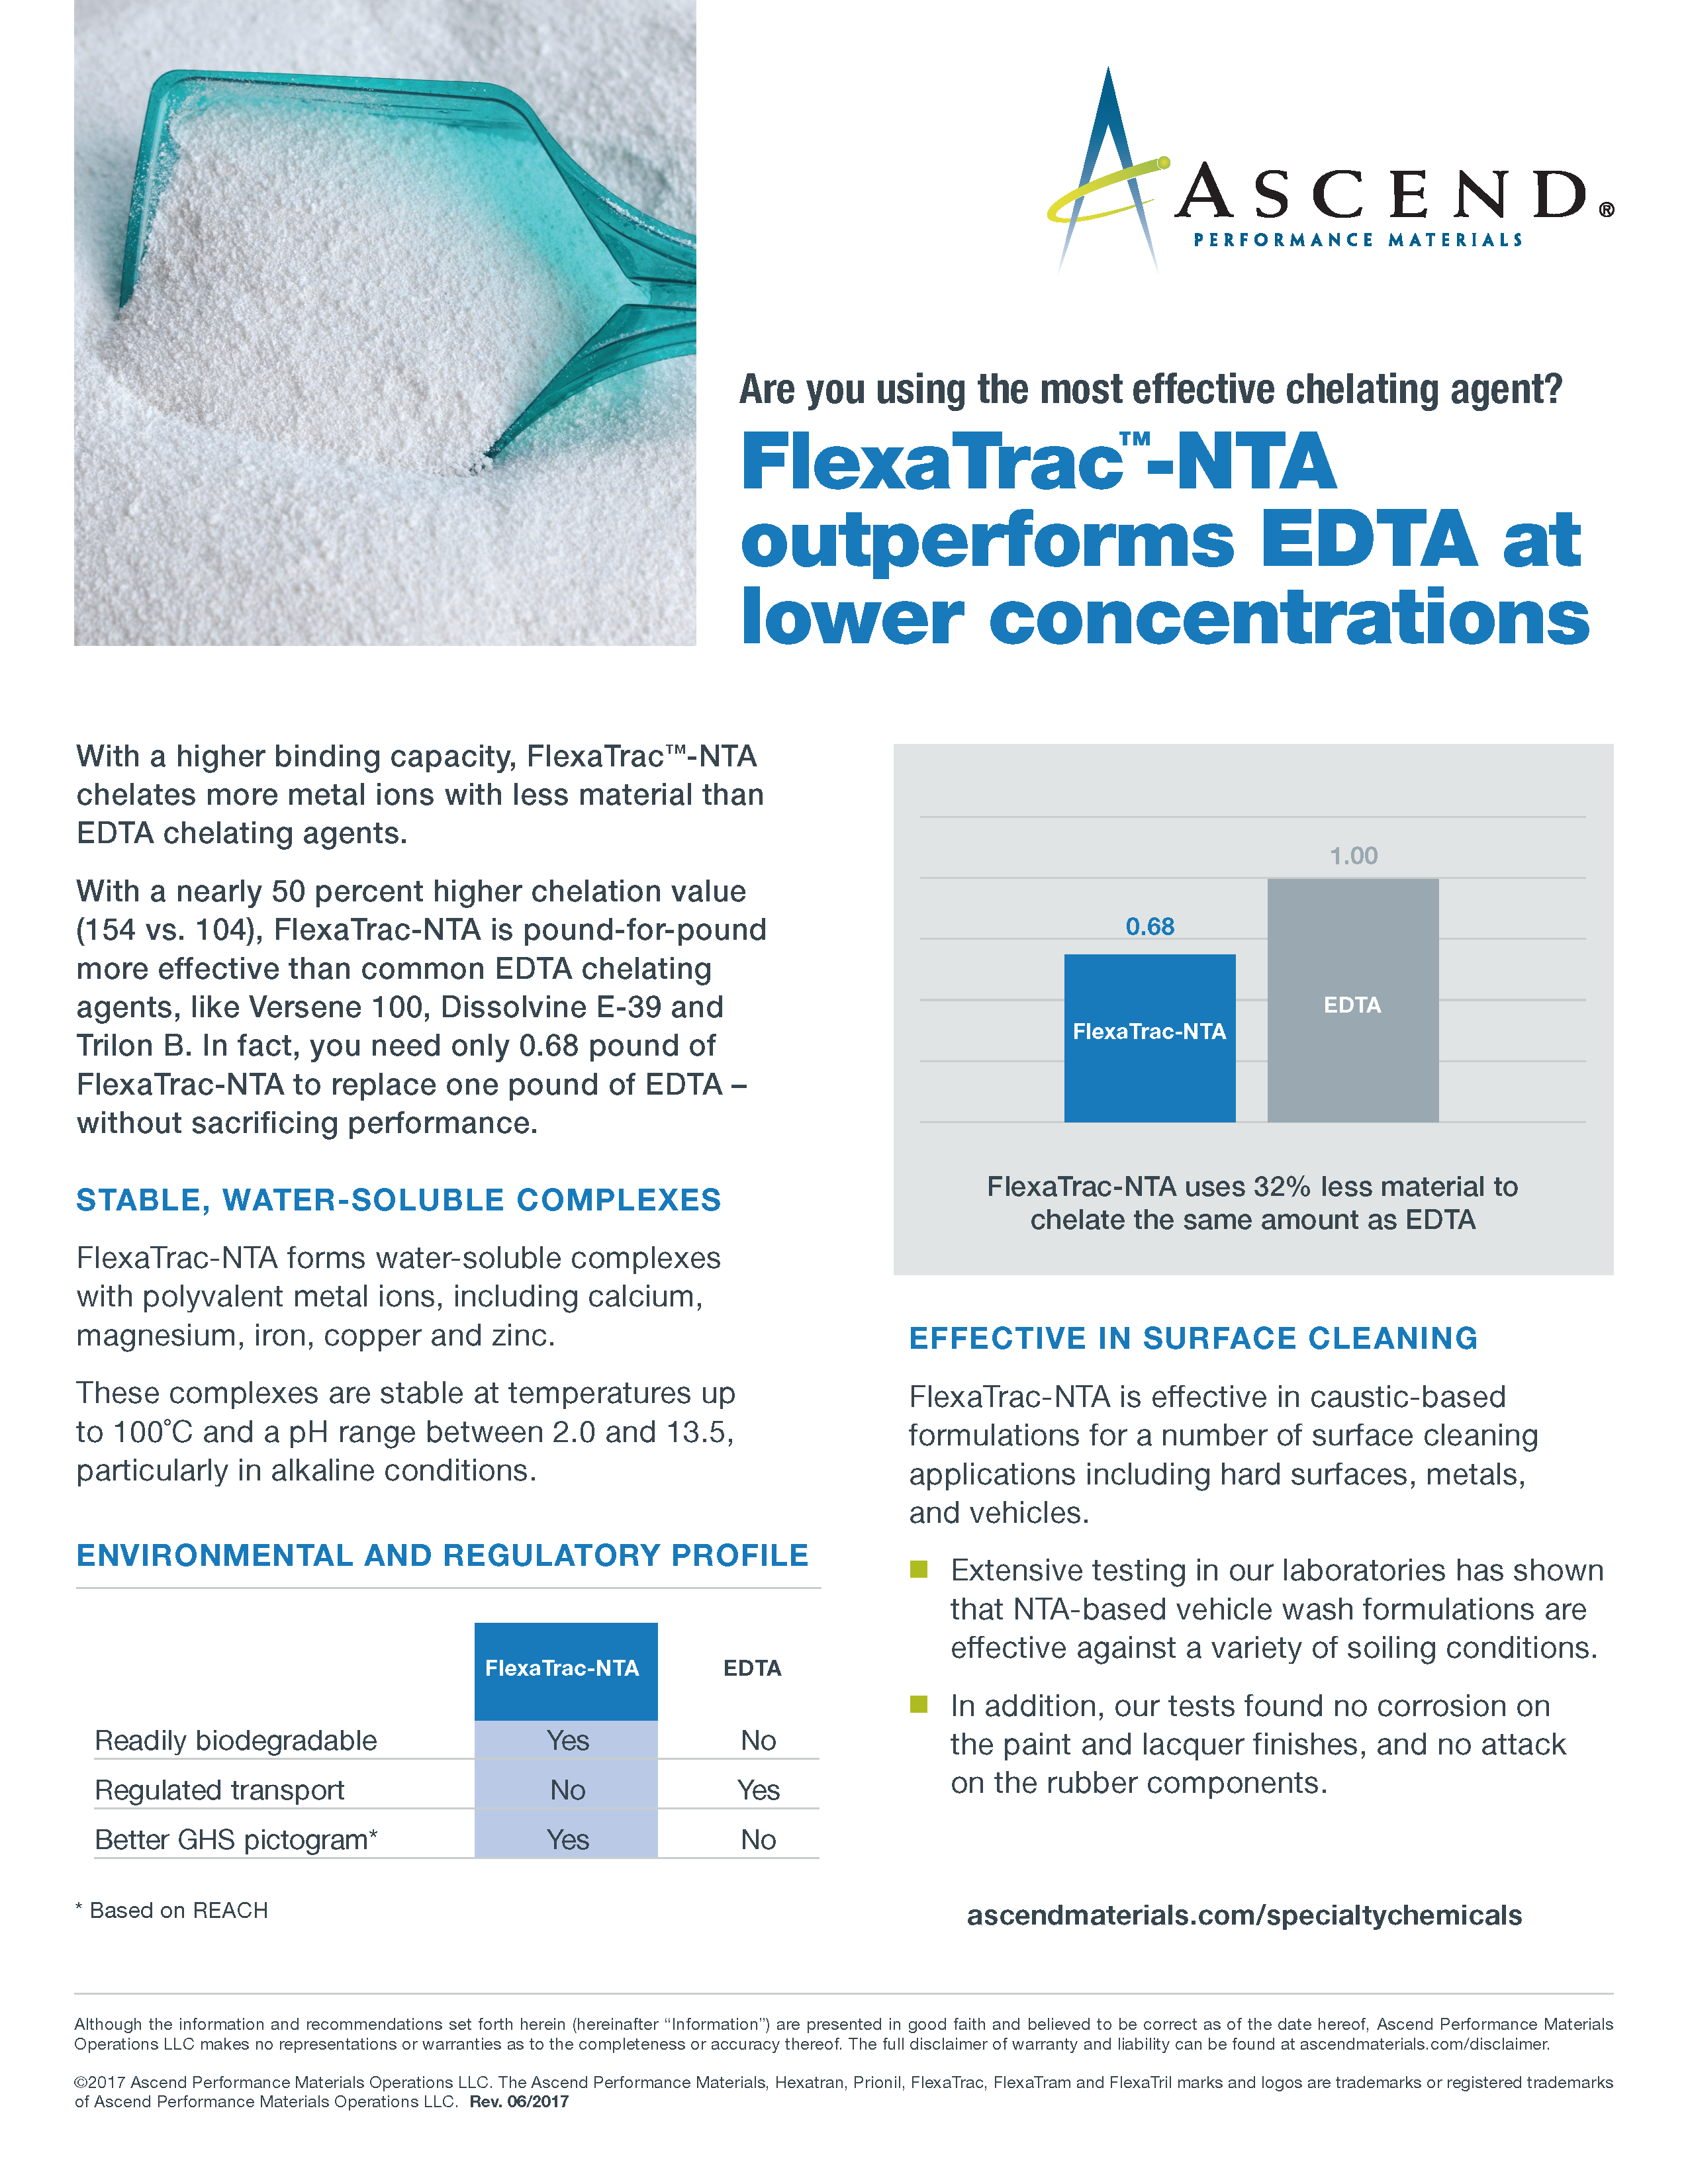 FlexaTrac®-NTA vs. EDTA